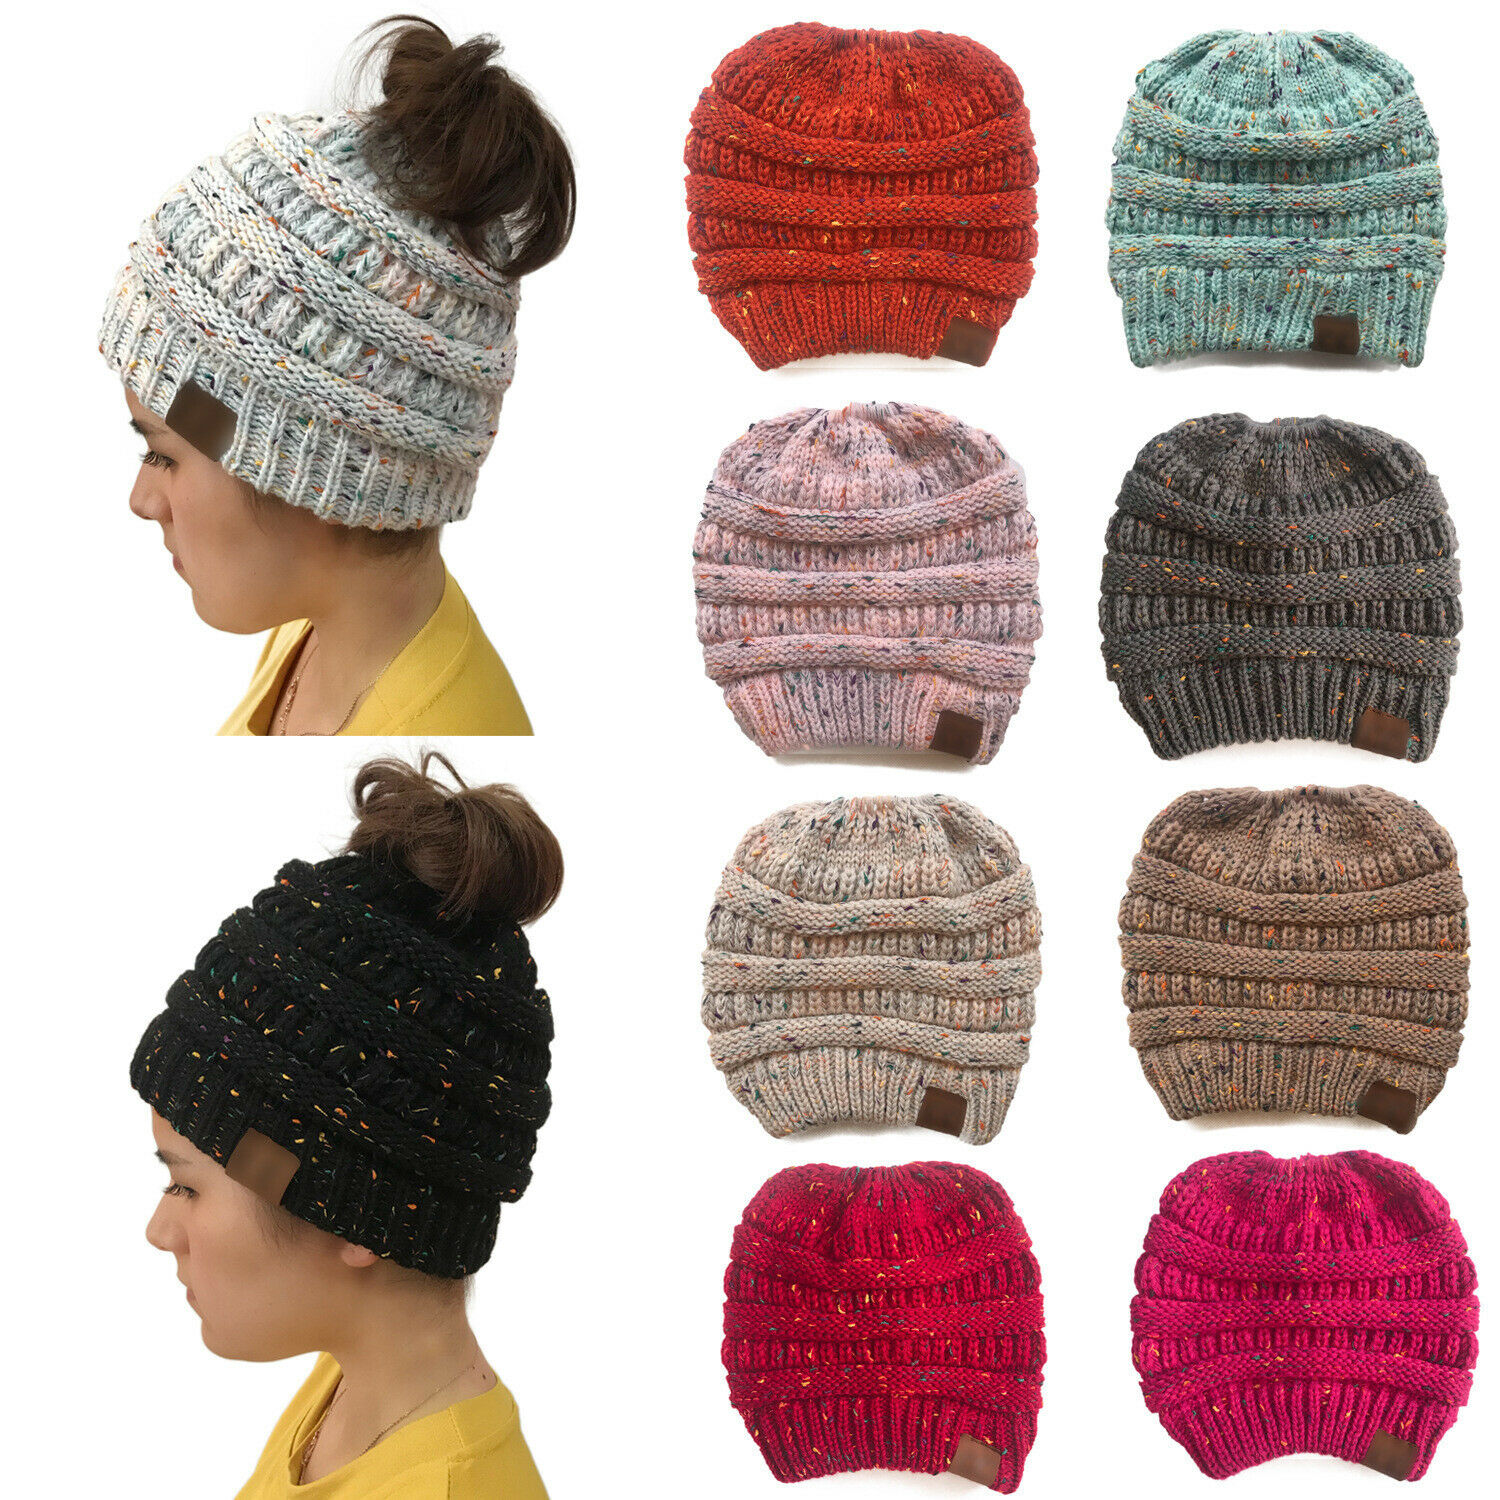 388fa311a Details about Women's Beanie Ponytail Messy Bun BeanieTail Multi Color  Ribbed Winter Hat Cap